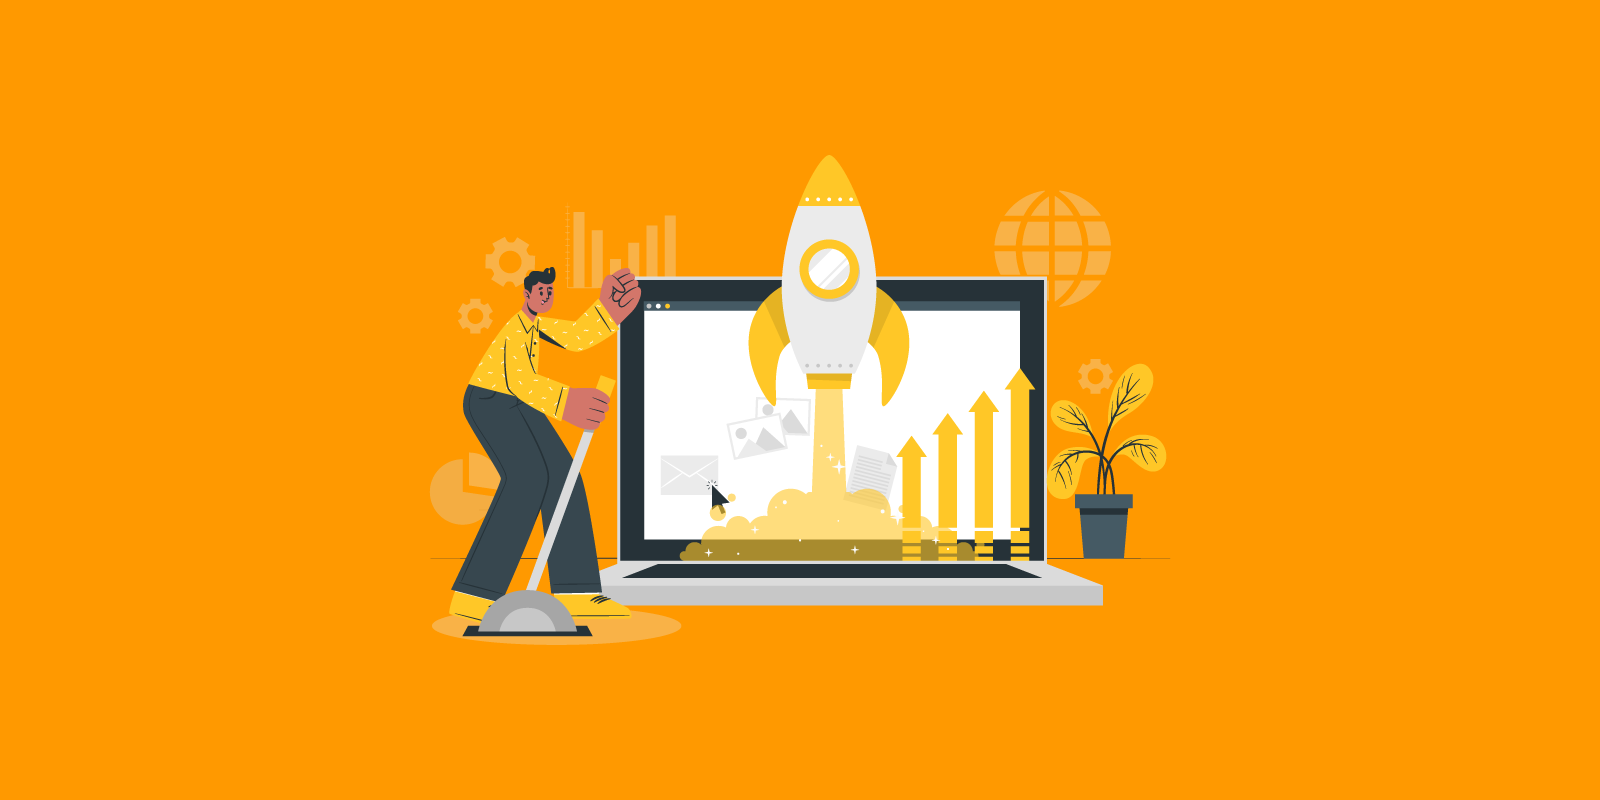 15+ Best Lead Generation Tools to Skyrocket Your Sales